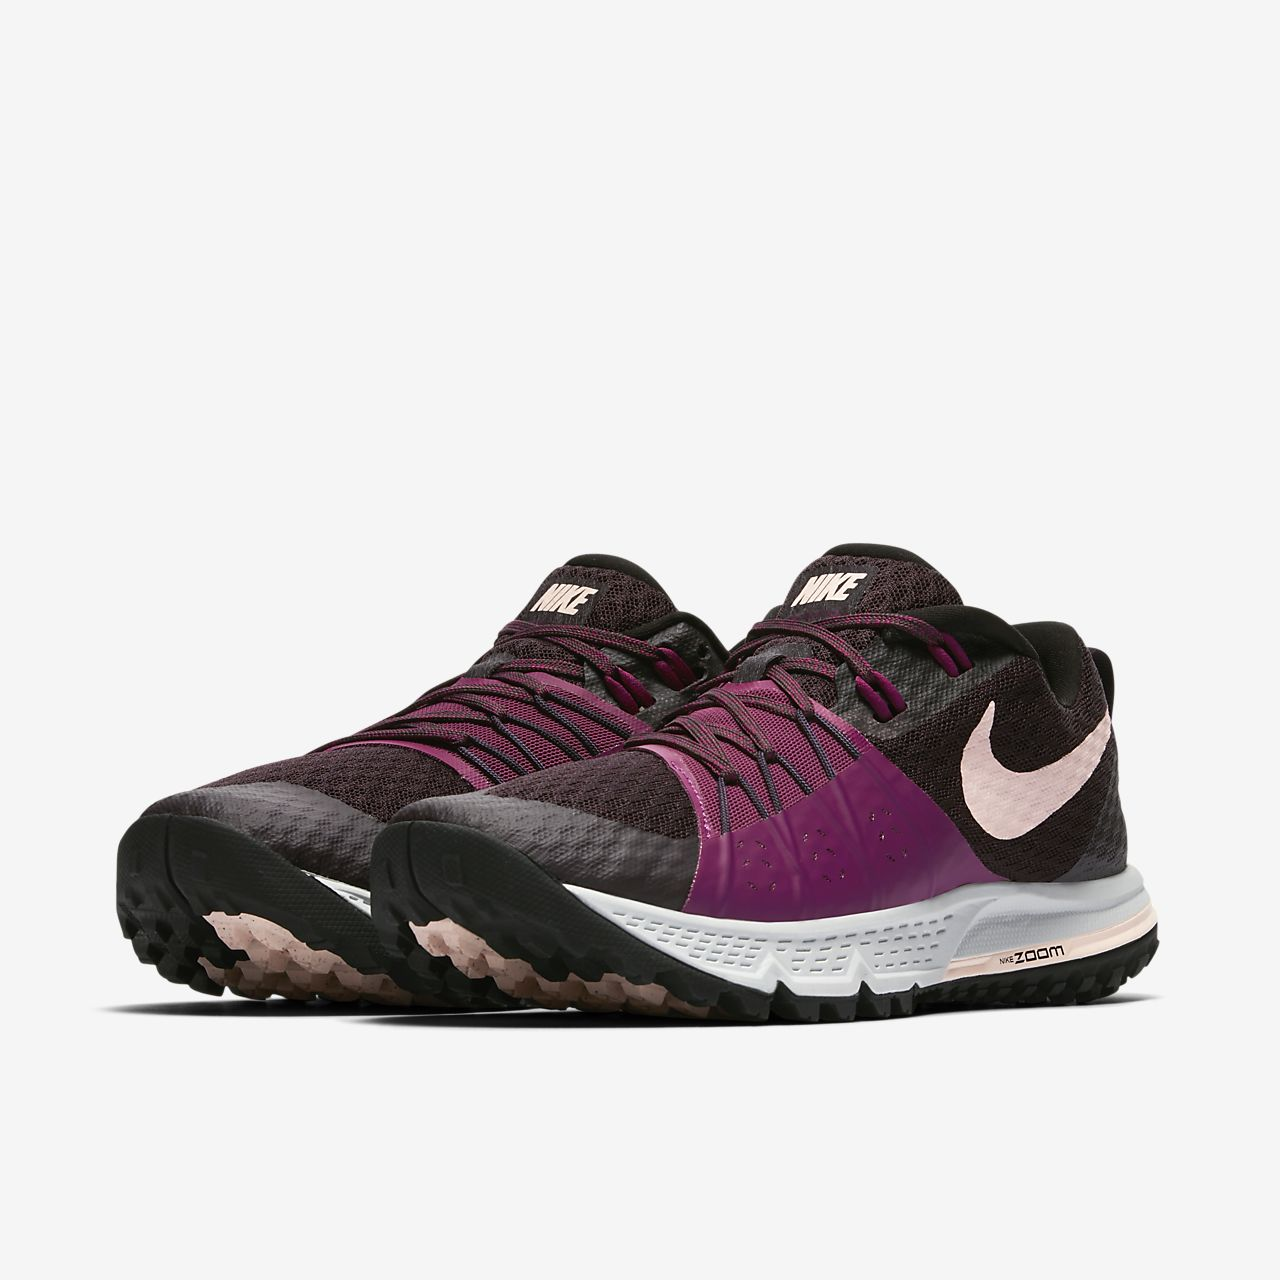 Nike Air Zoom Mystify Iv Ladies Stellenwerk Dortmund Women Span Shoes Pink